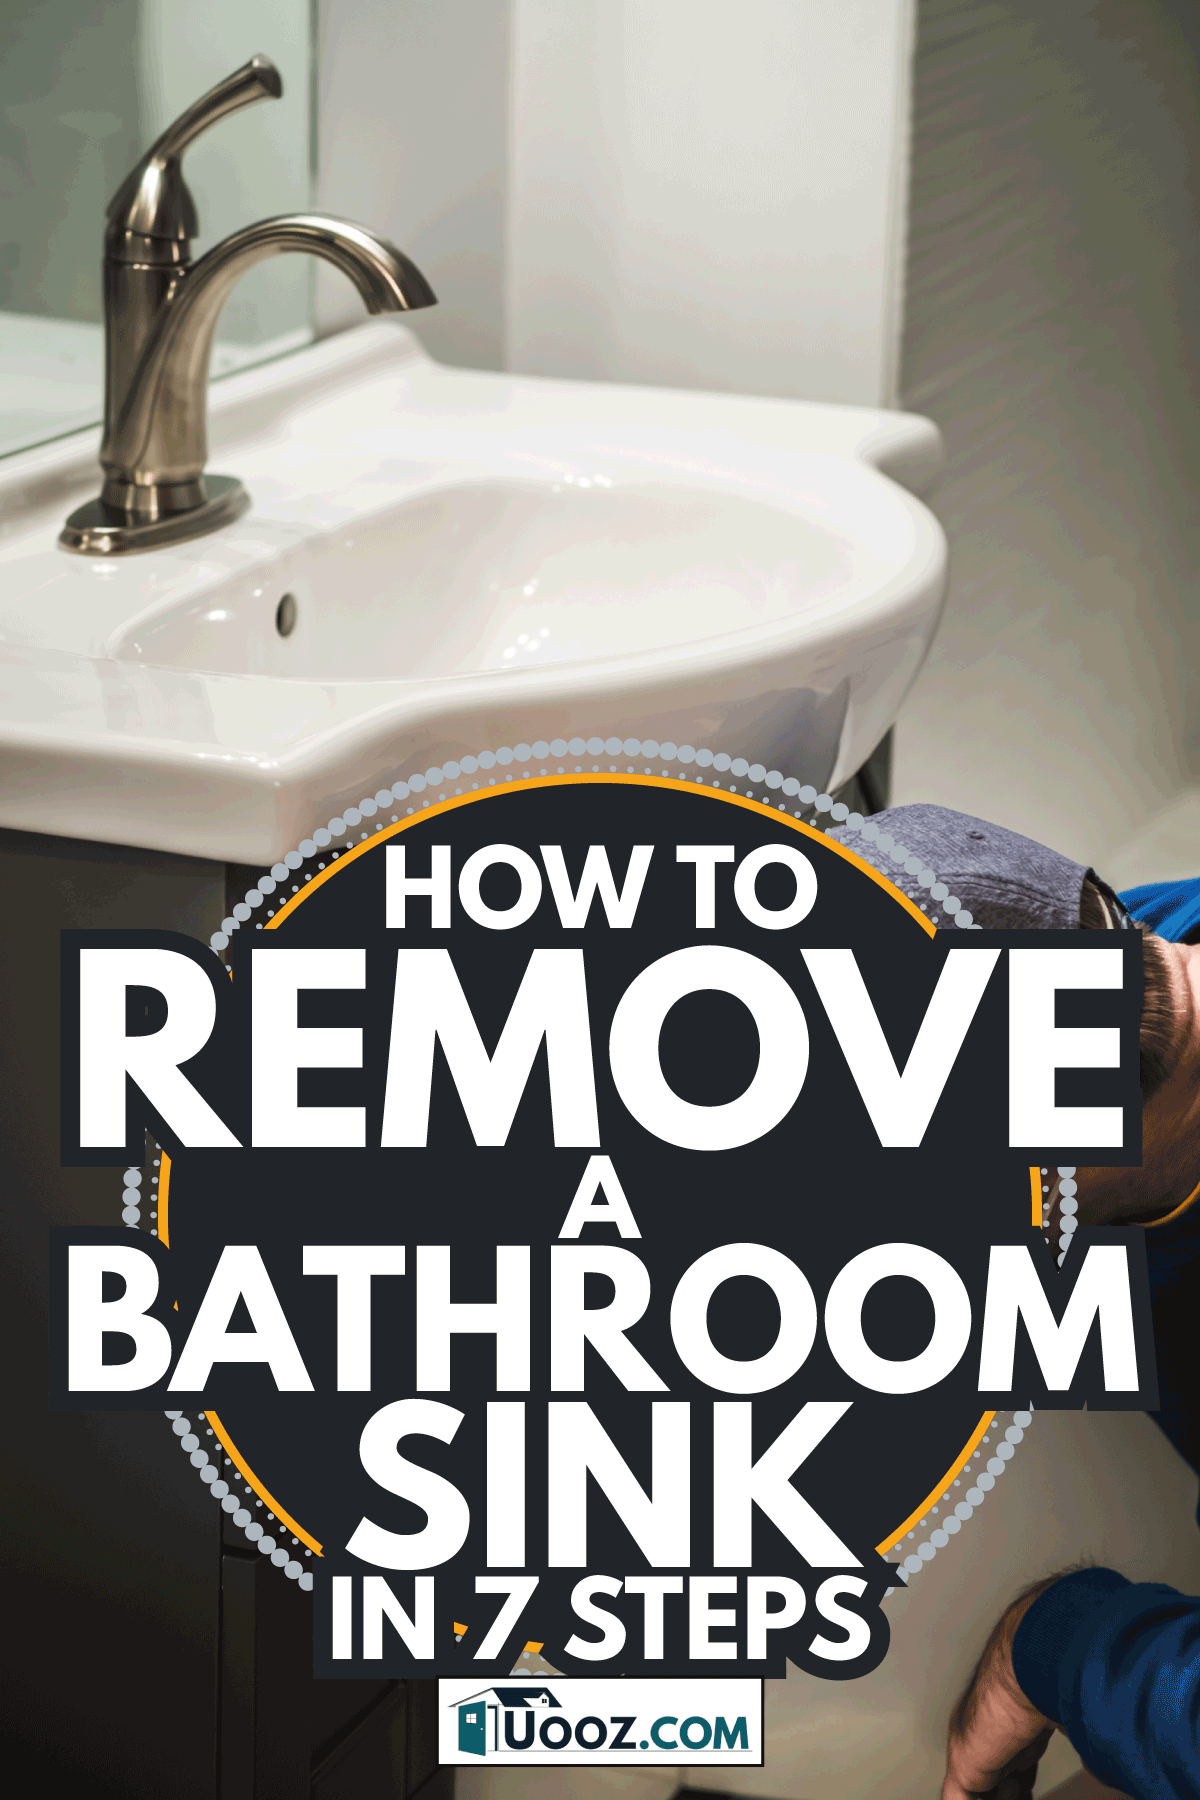 Plumber fixing vanity in domestic bathroom. How To Remove A Bathroom Sink In 7 Steps